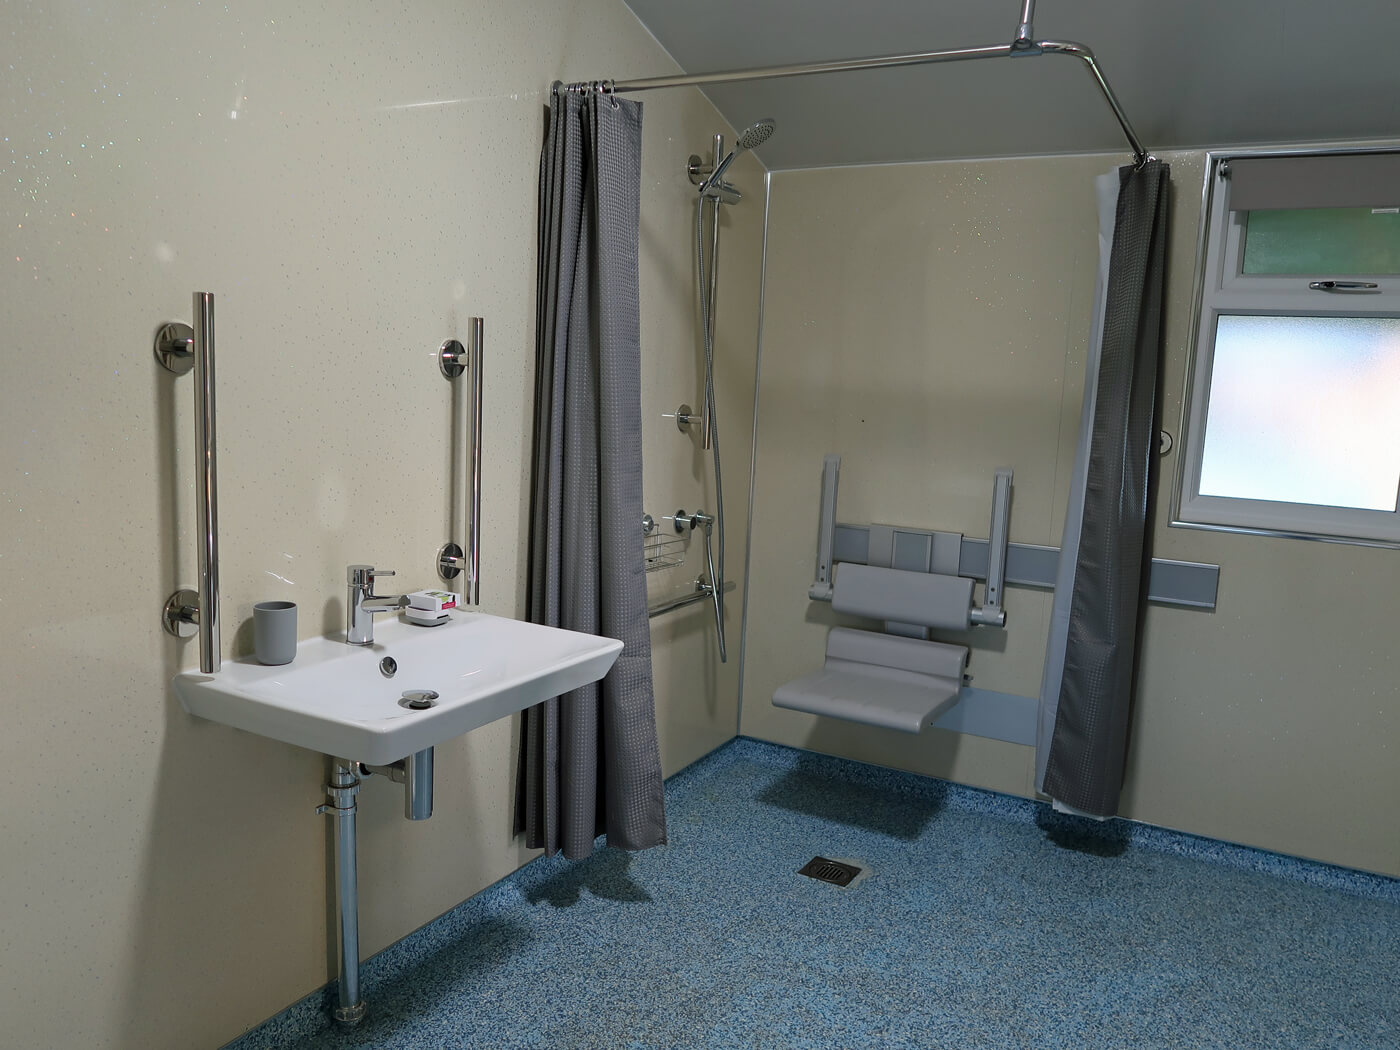 The accessible bathroom in the accessible safari ten showing the sink and roll-in shower.